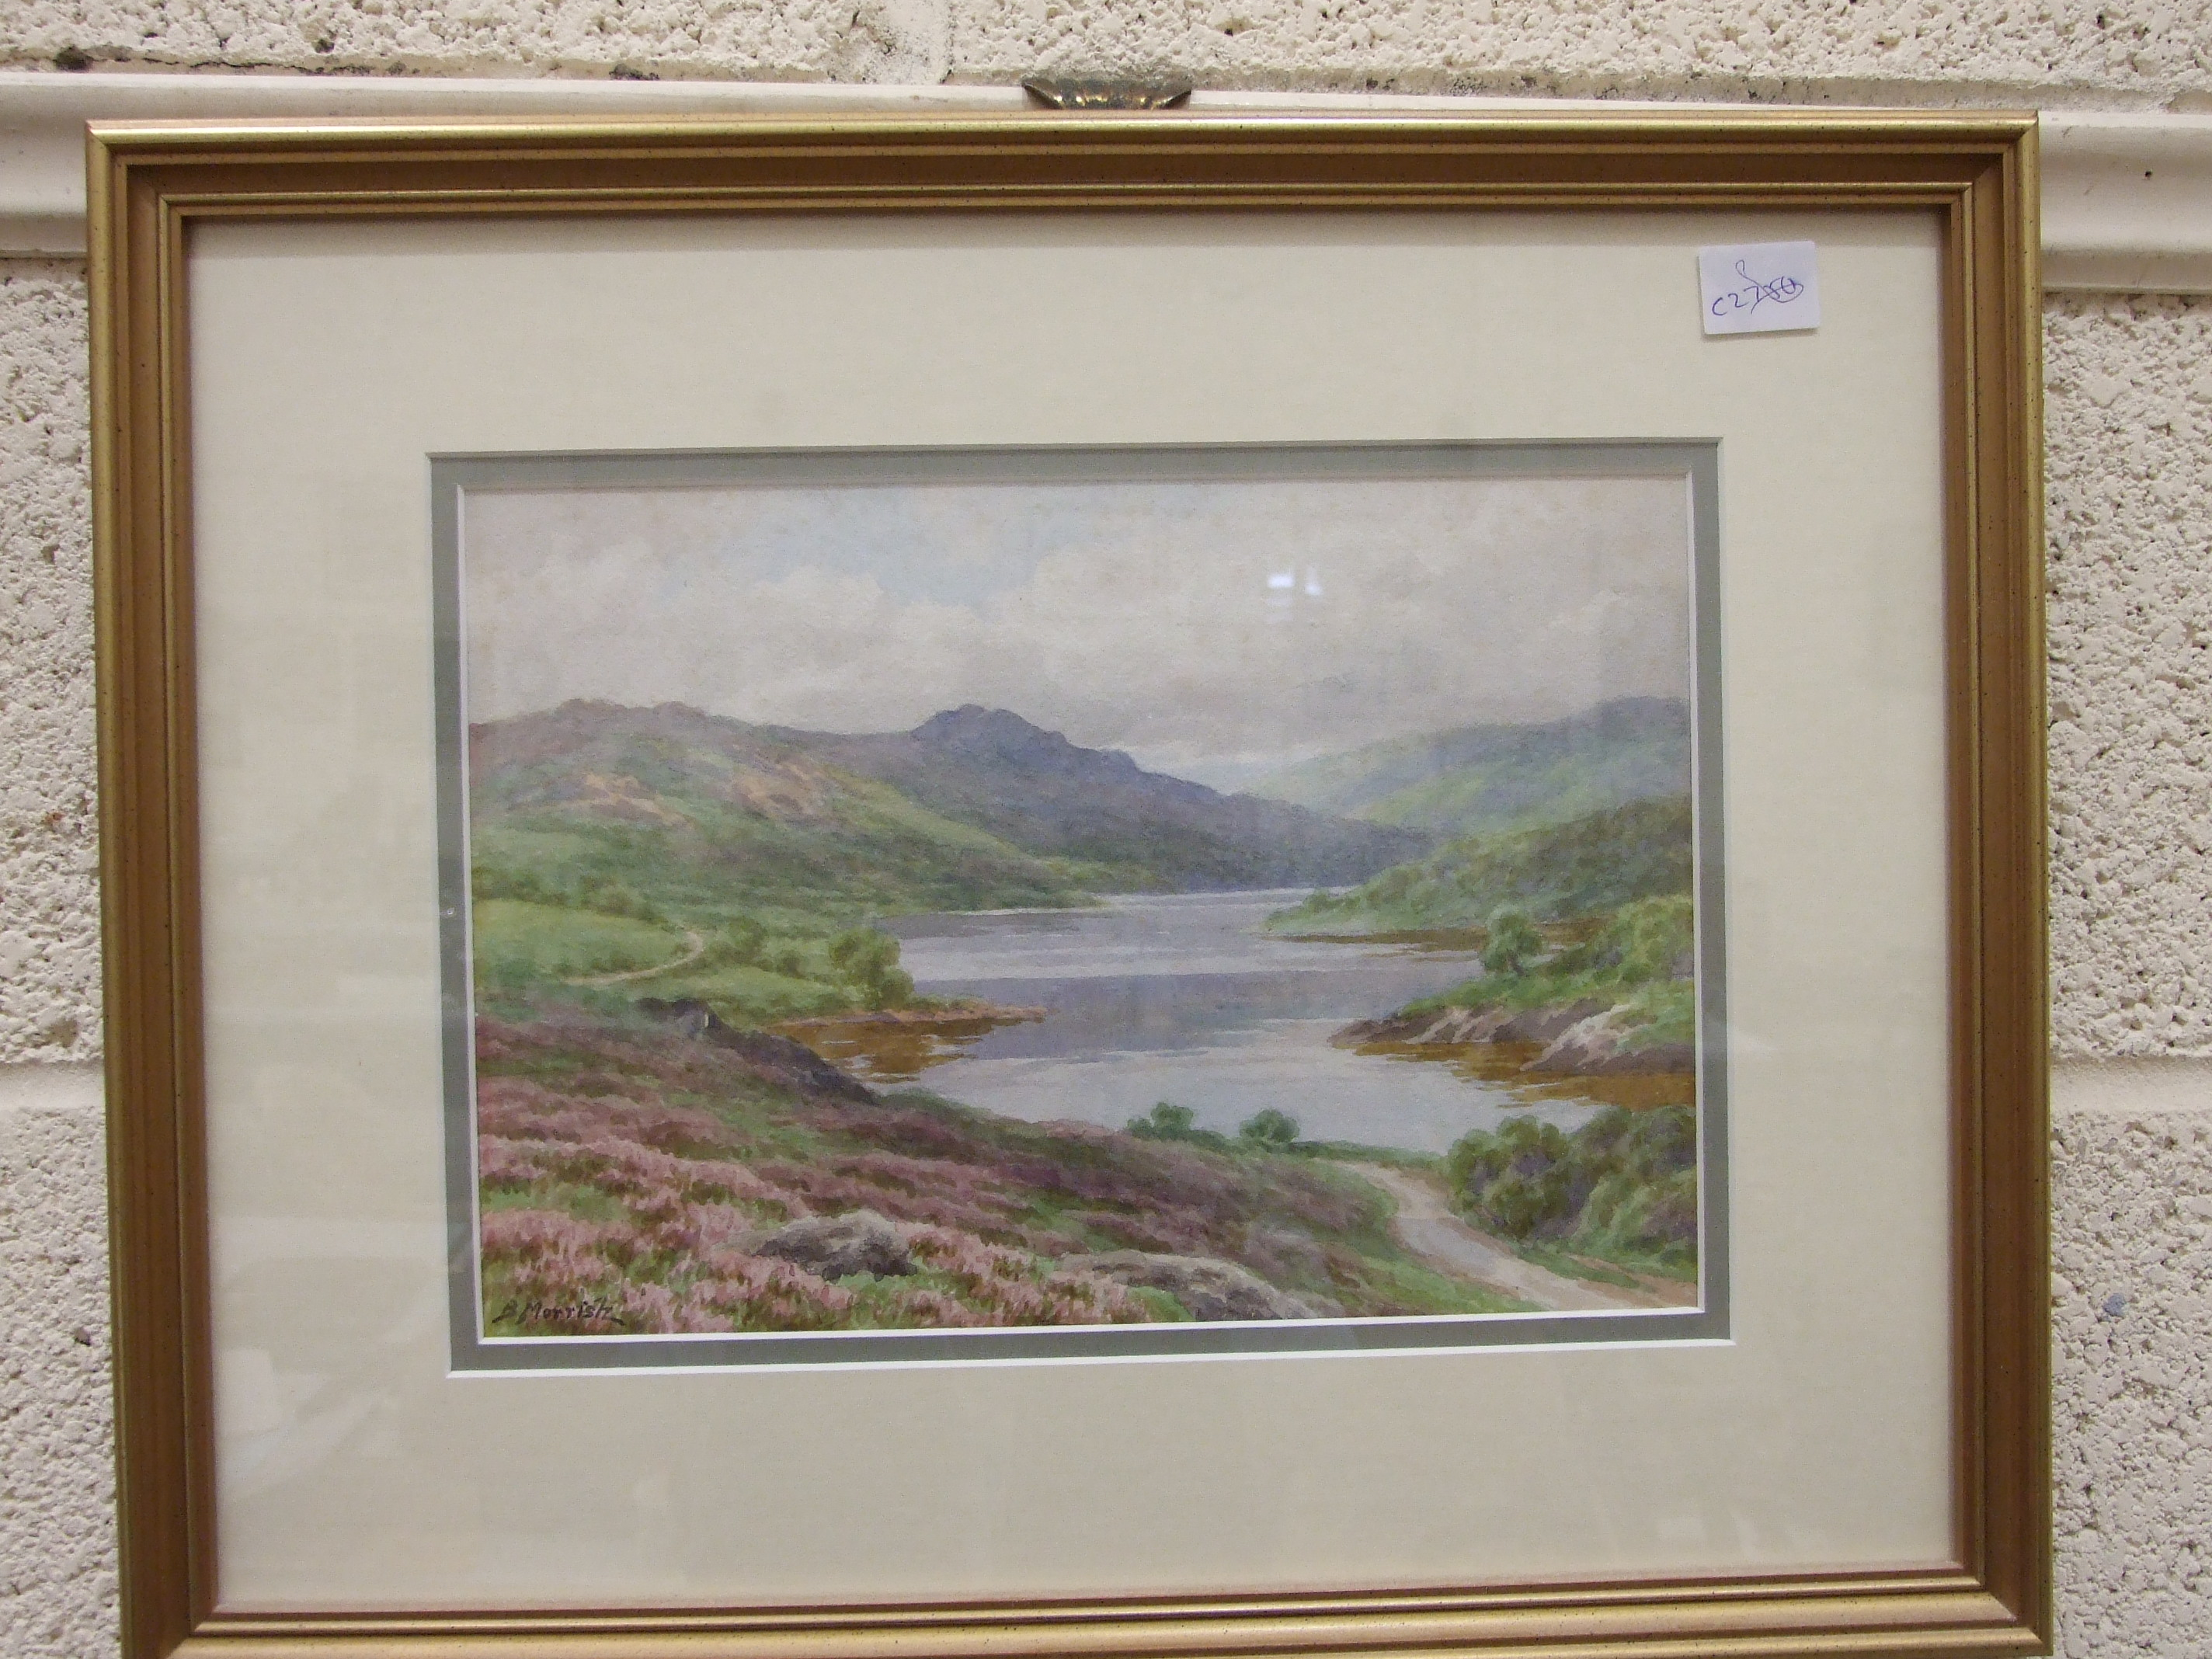 B Morrish, 'Mist Tor and Burrator Lake', signed watercolour, 18 x 27cm and Sue Mercer 'Sheepstor - Image 3 of 3